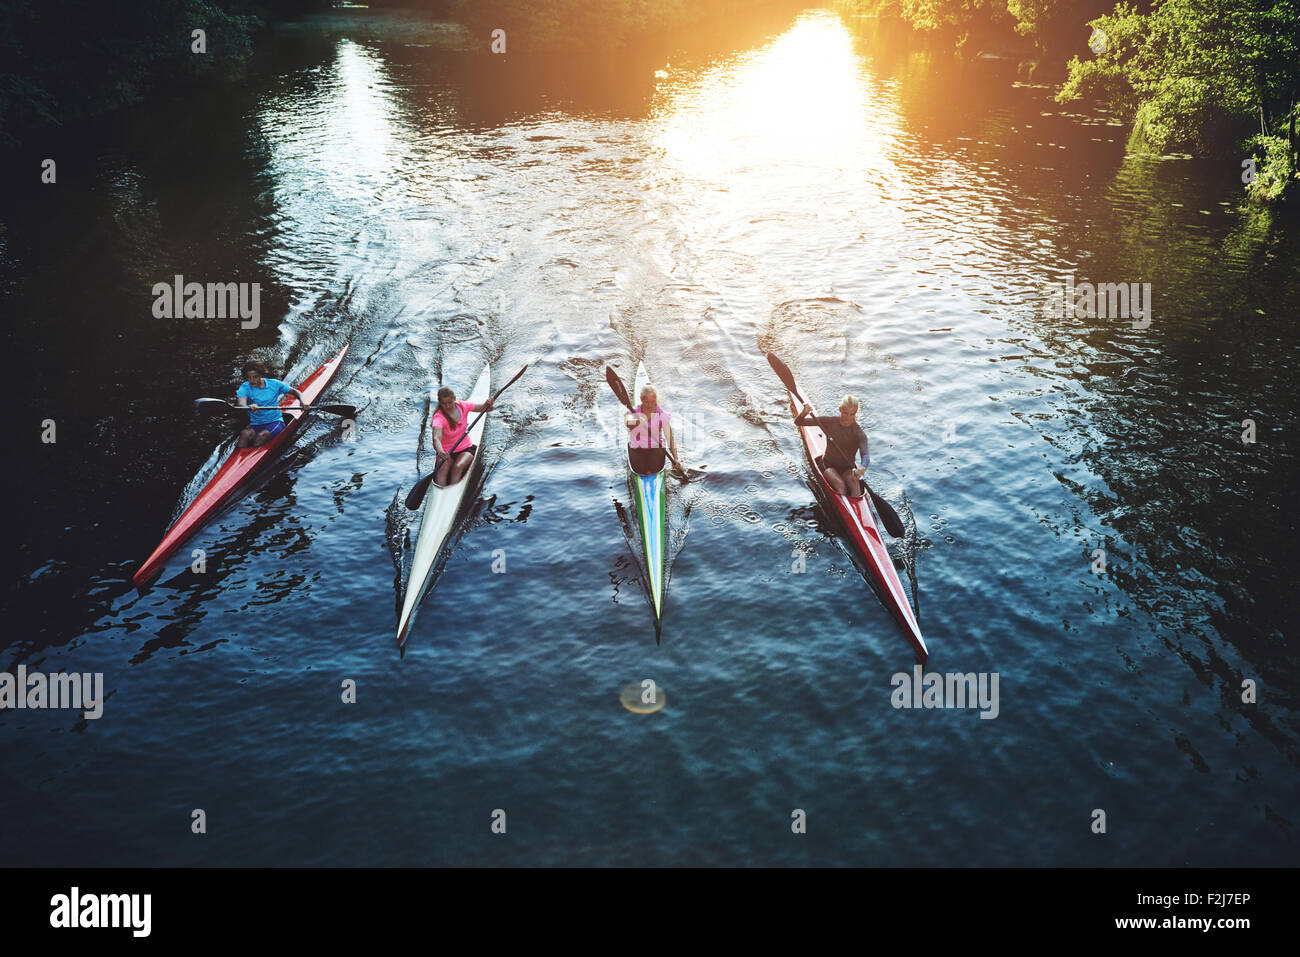 Team of rowing people sailing against camera in sunset - Stock Image